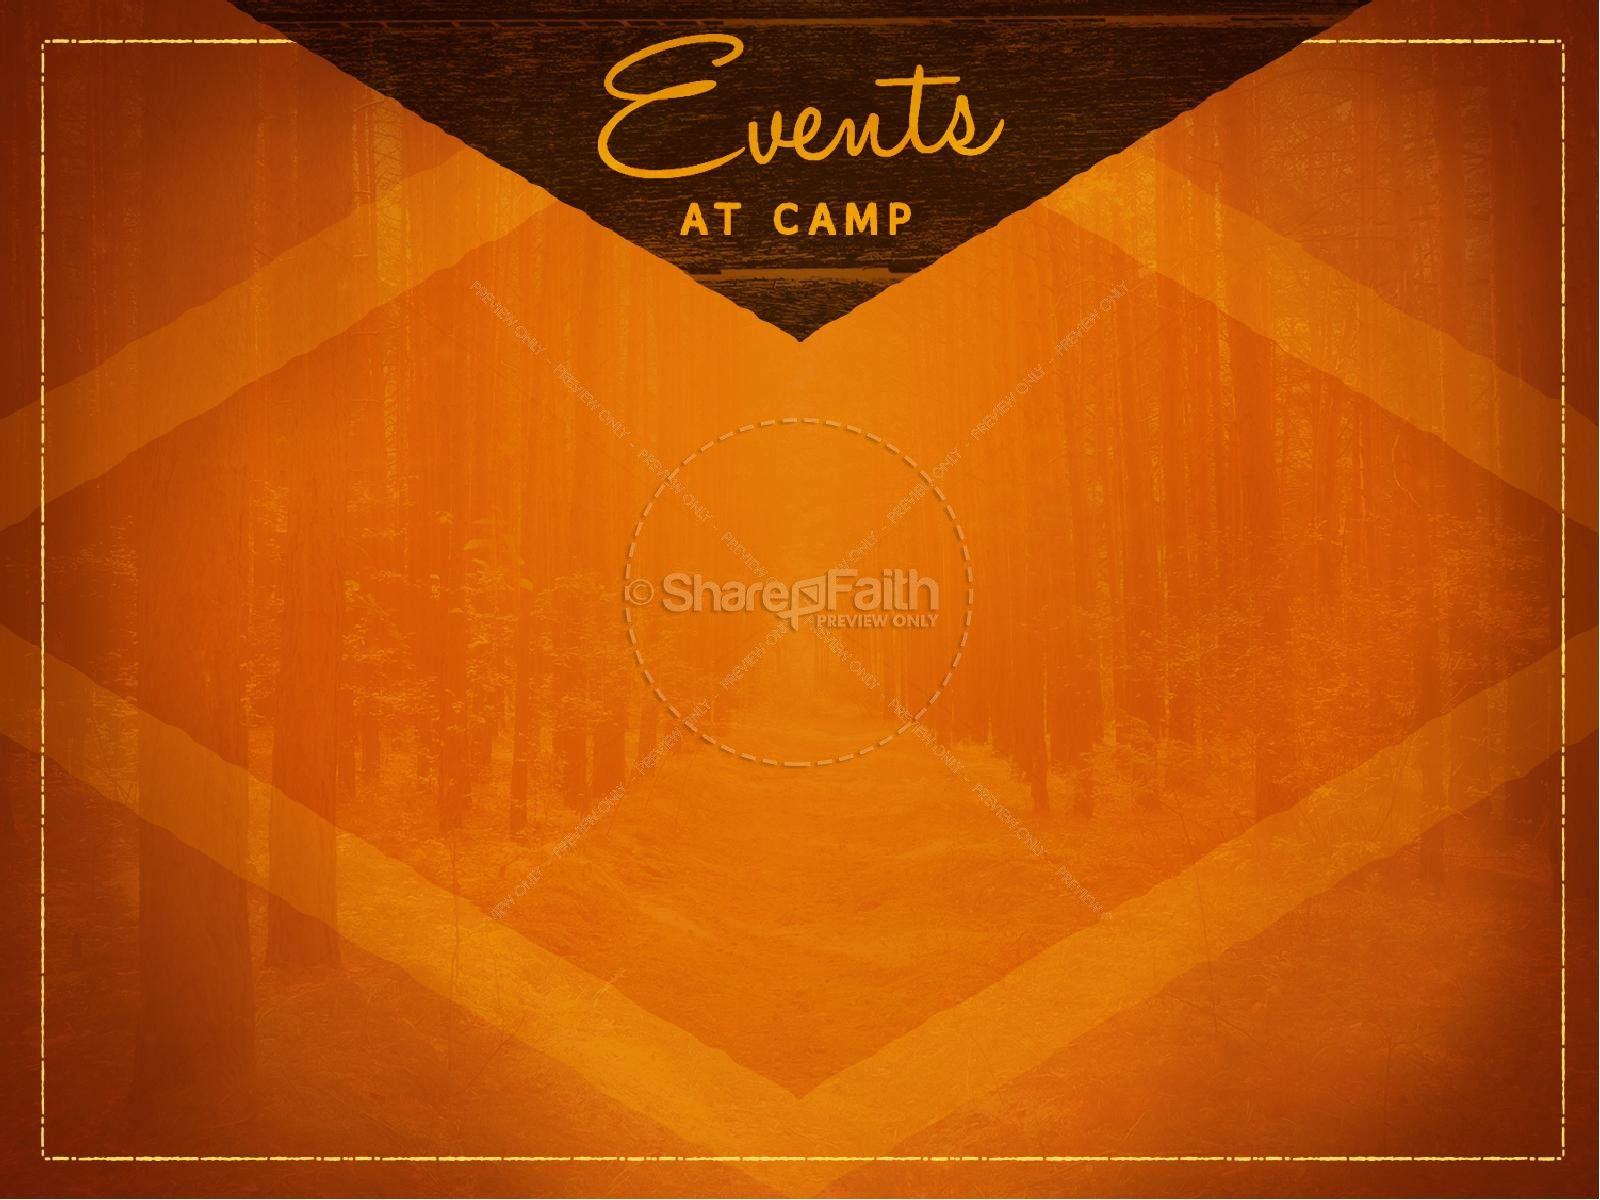 Camp Retreat Christian PowerPoint